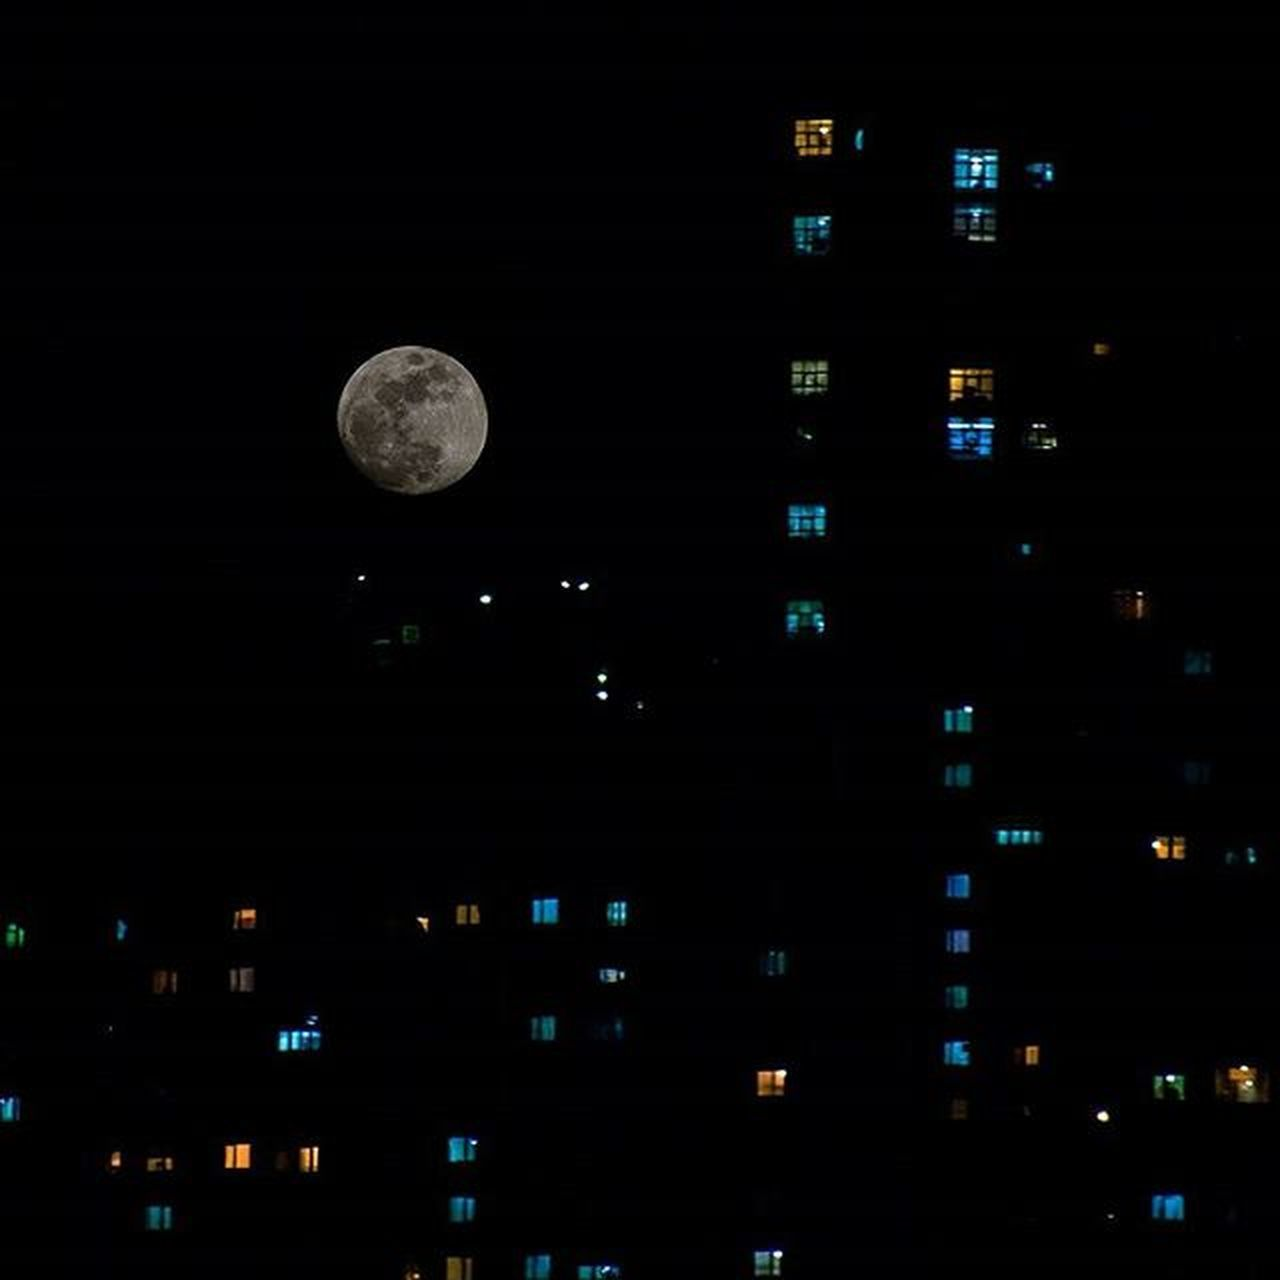 İsmail Balı © 2014. Rise of Moon Fullmoon City Buildings Light Night Life People Gununkaresi Moment An O_an Bendenbirkare Vscocam Instagood Nikontop Nikonofficials Nature Original Landscape_captures Photooftheday Follow4follow Followme Famous astronomy astrophotography